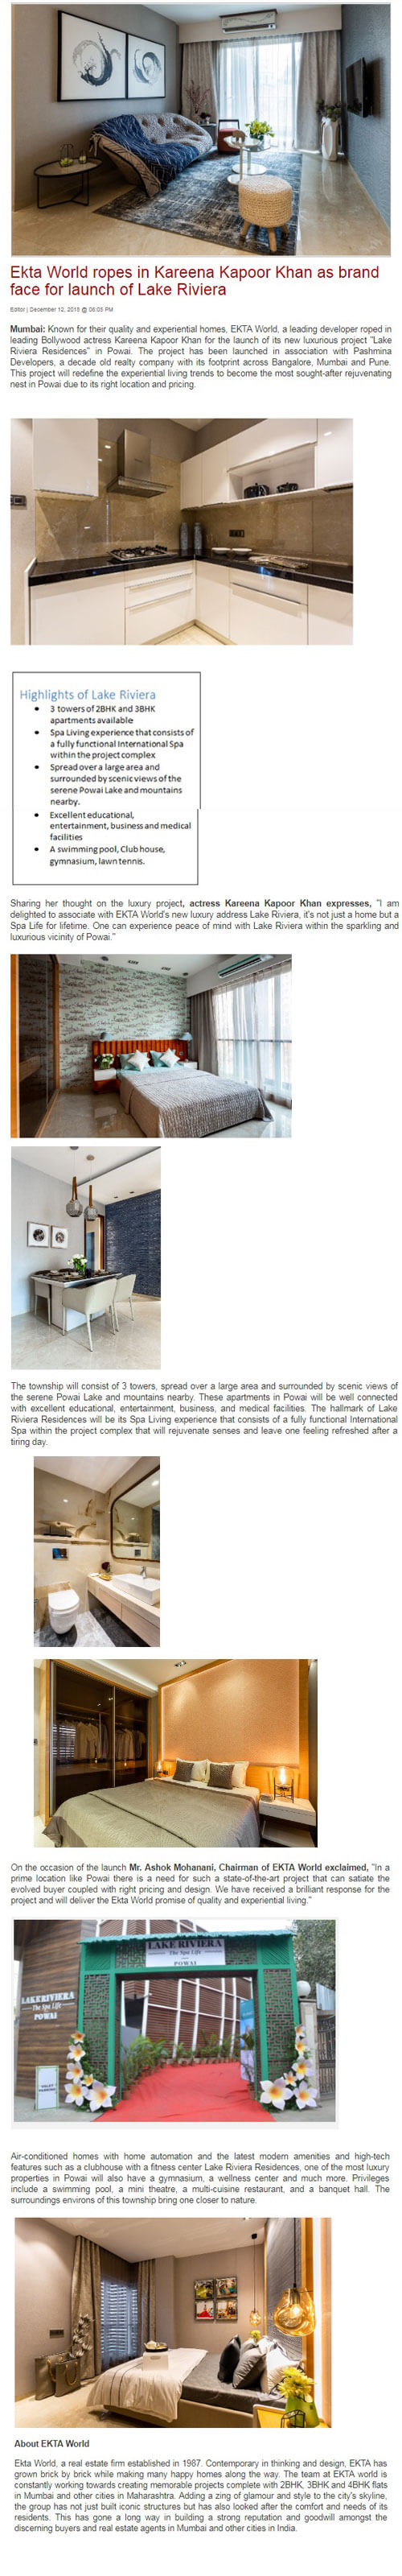 b513255a9c Dec. EKTA World redefines spa living with new project